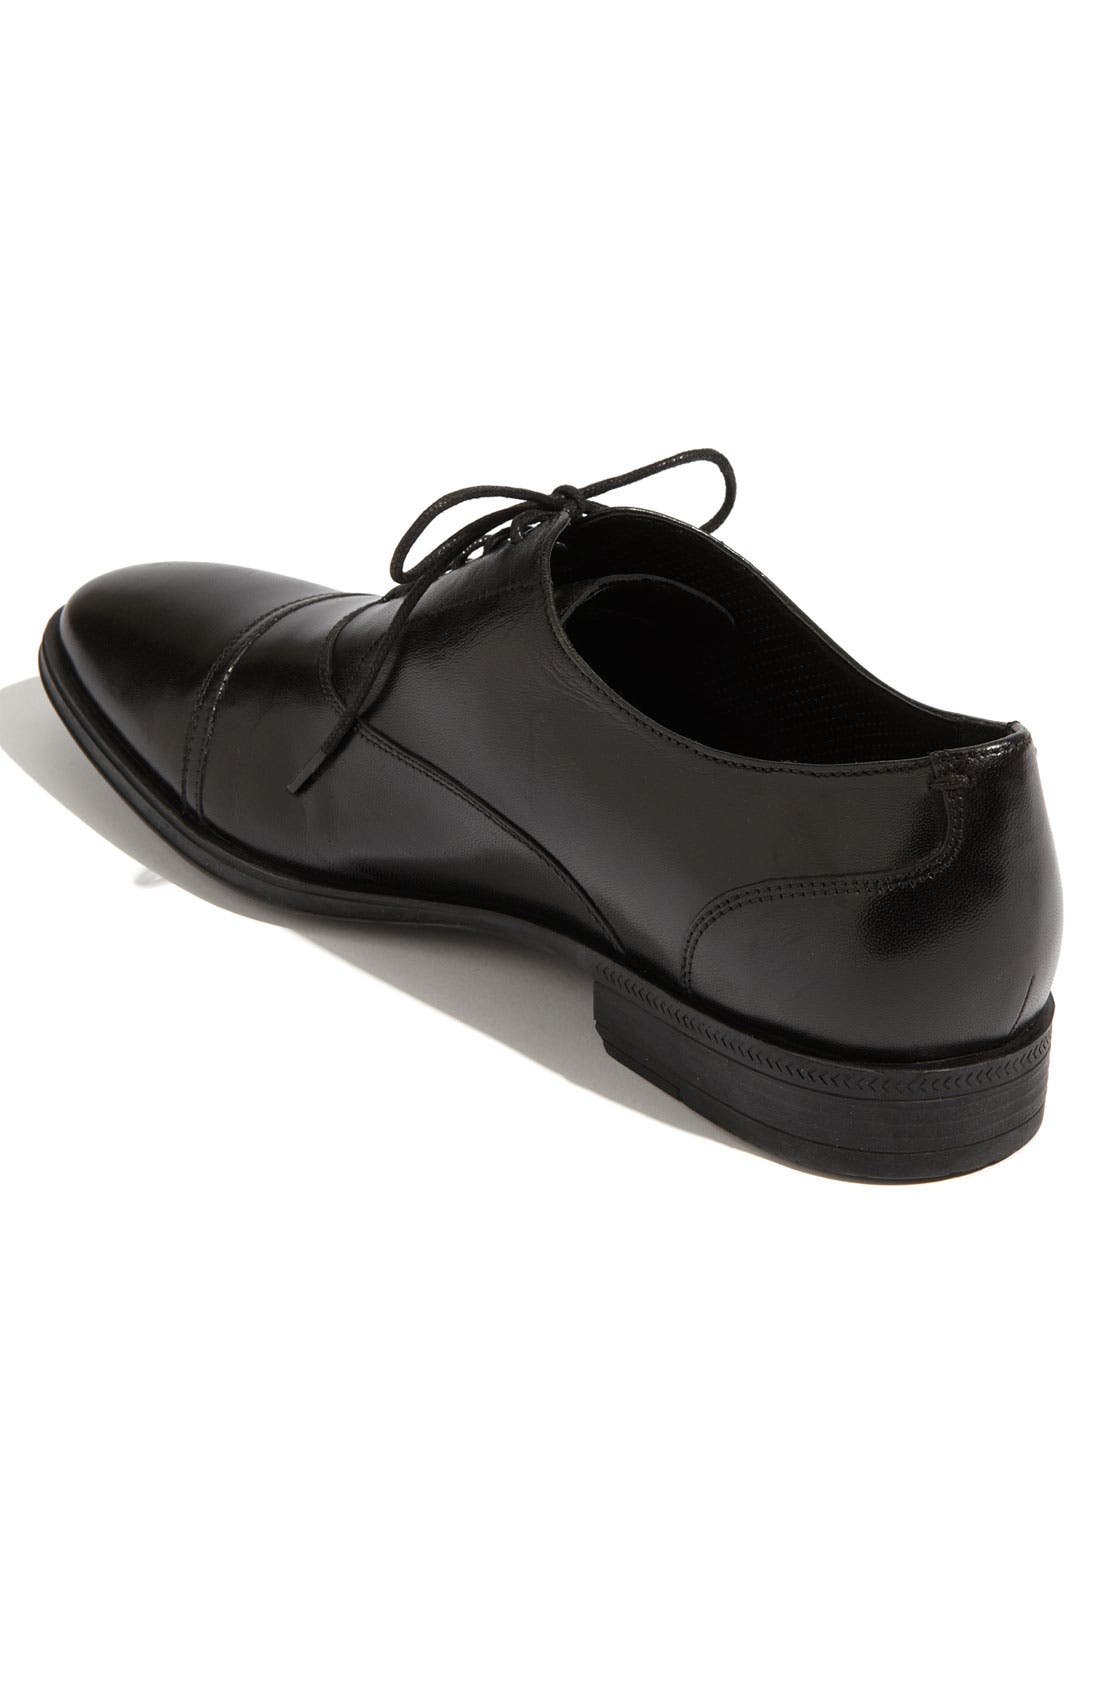 Alternate Image 2  - Cole Haan 'Air Adams' Cap Toe Oxford